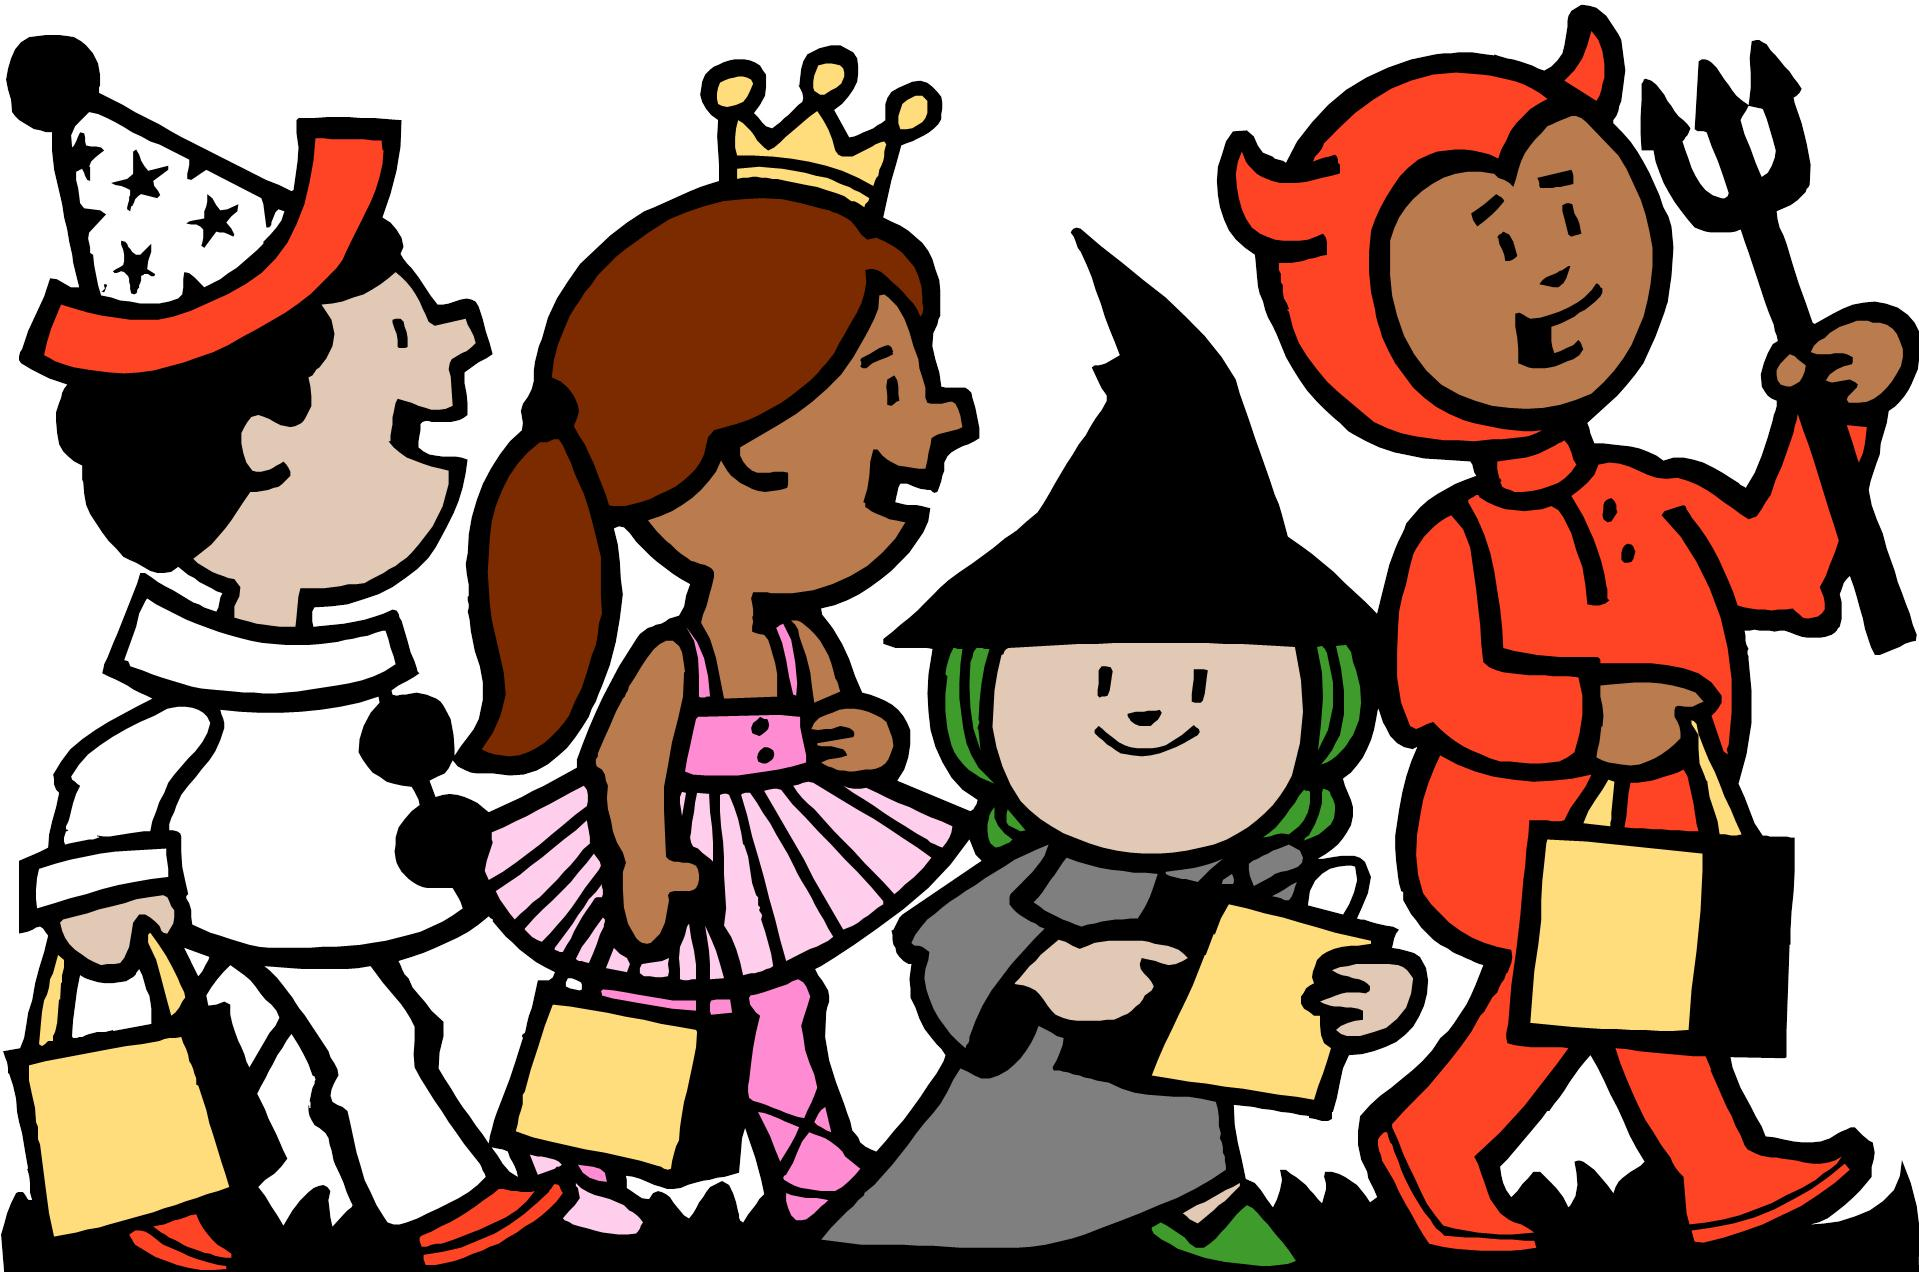 Trunk Or Treat Trick Or Treat Clipart 2-Trunk or treat trick or treat clipart 2-17